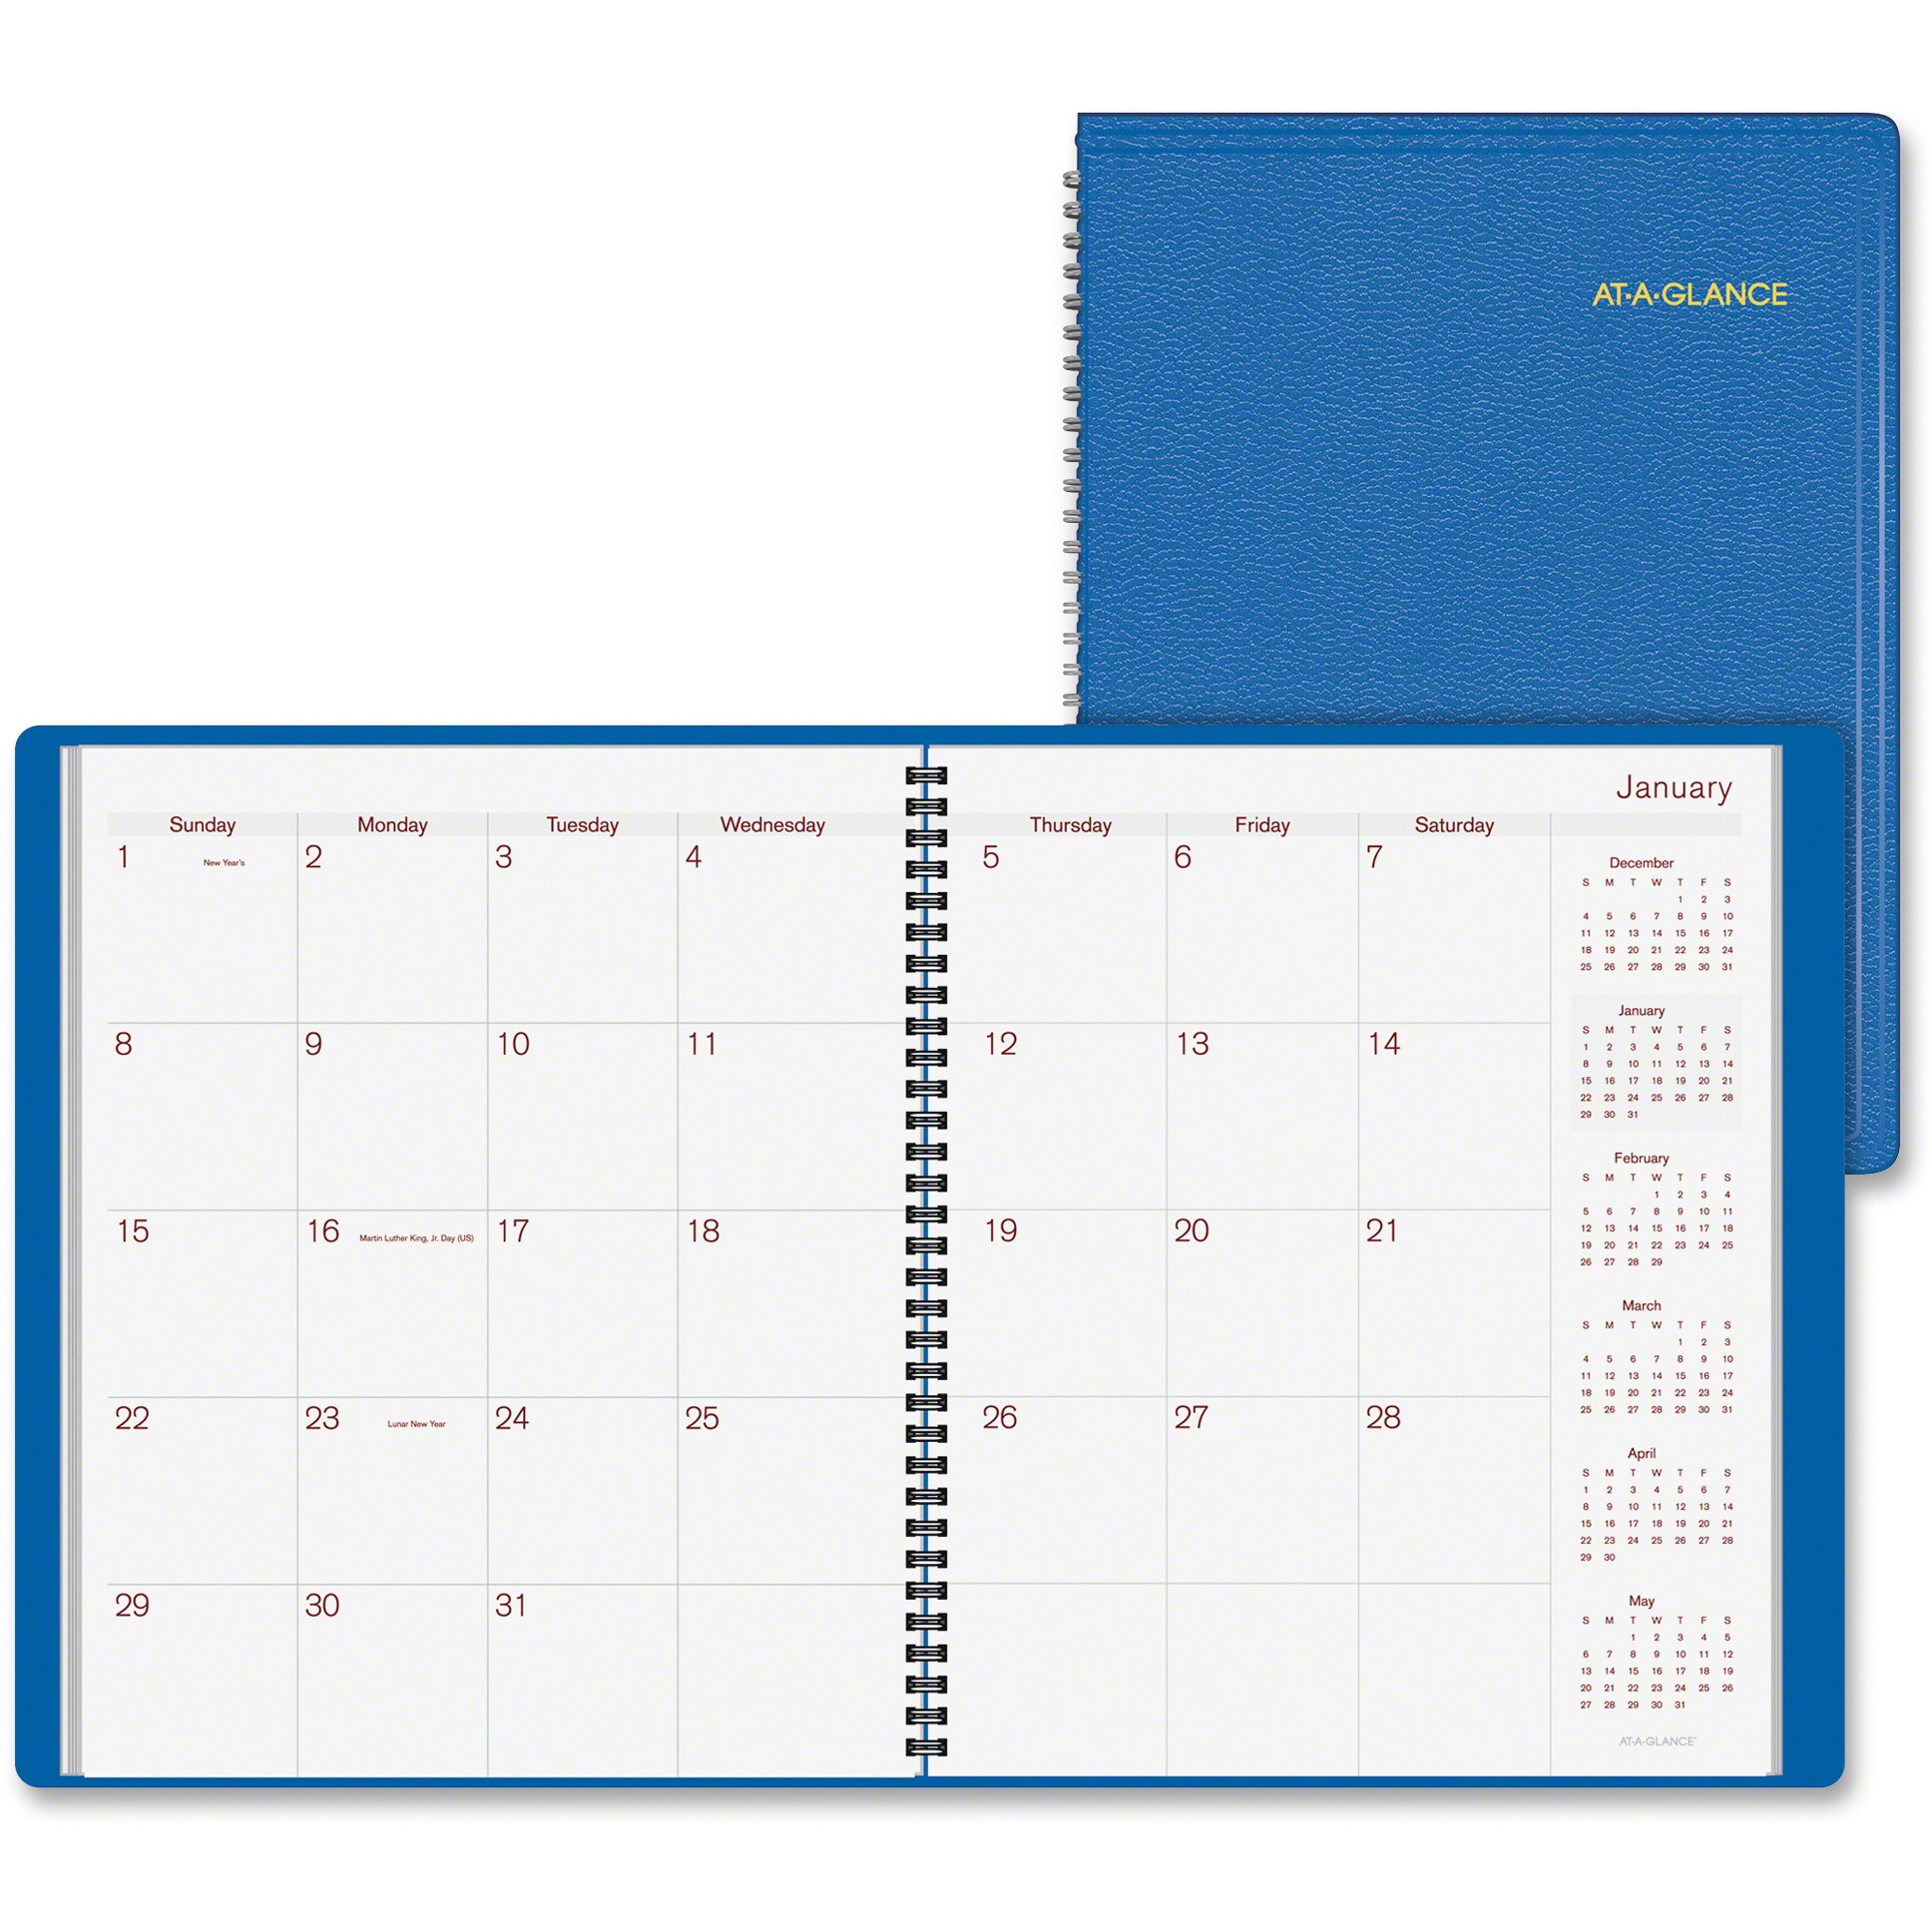 At-A-Glance Fashion Color Monthly Planner